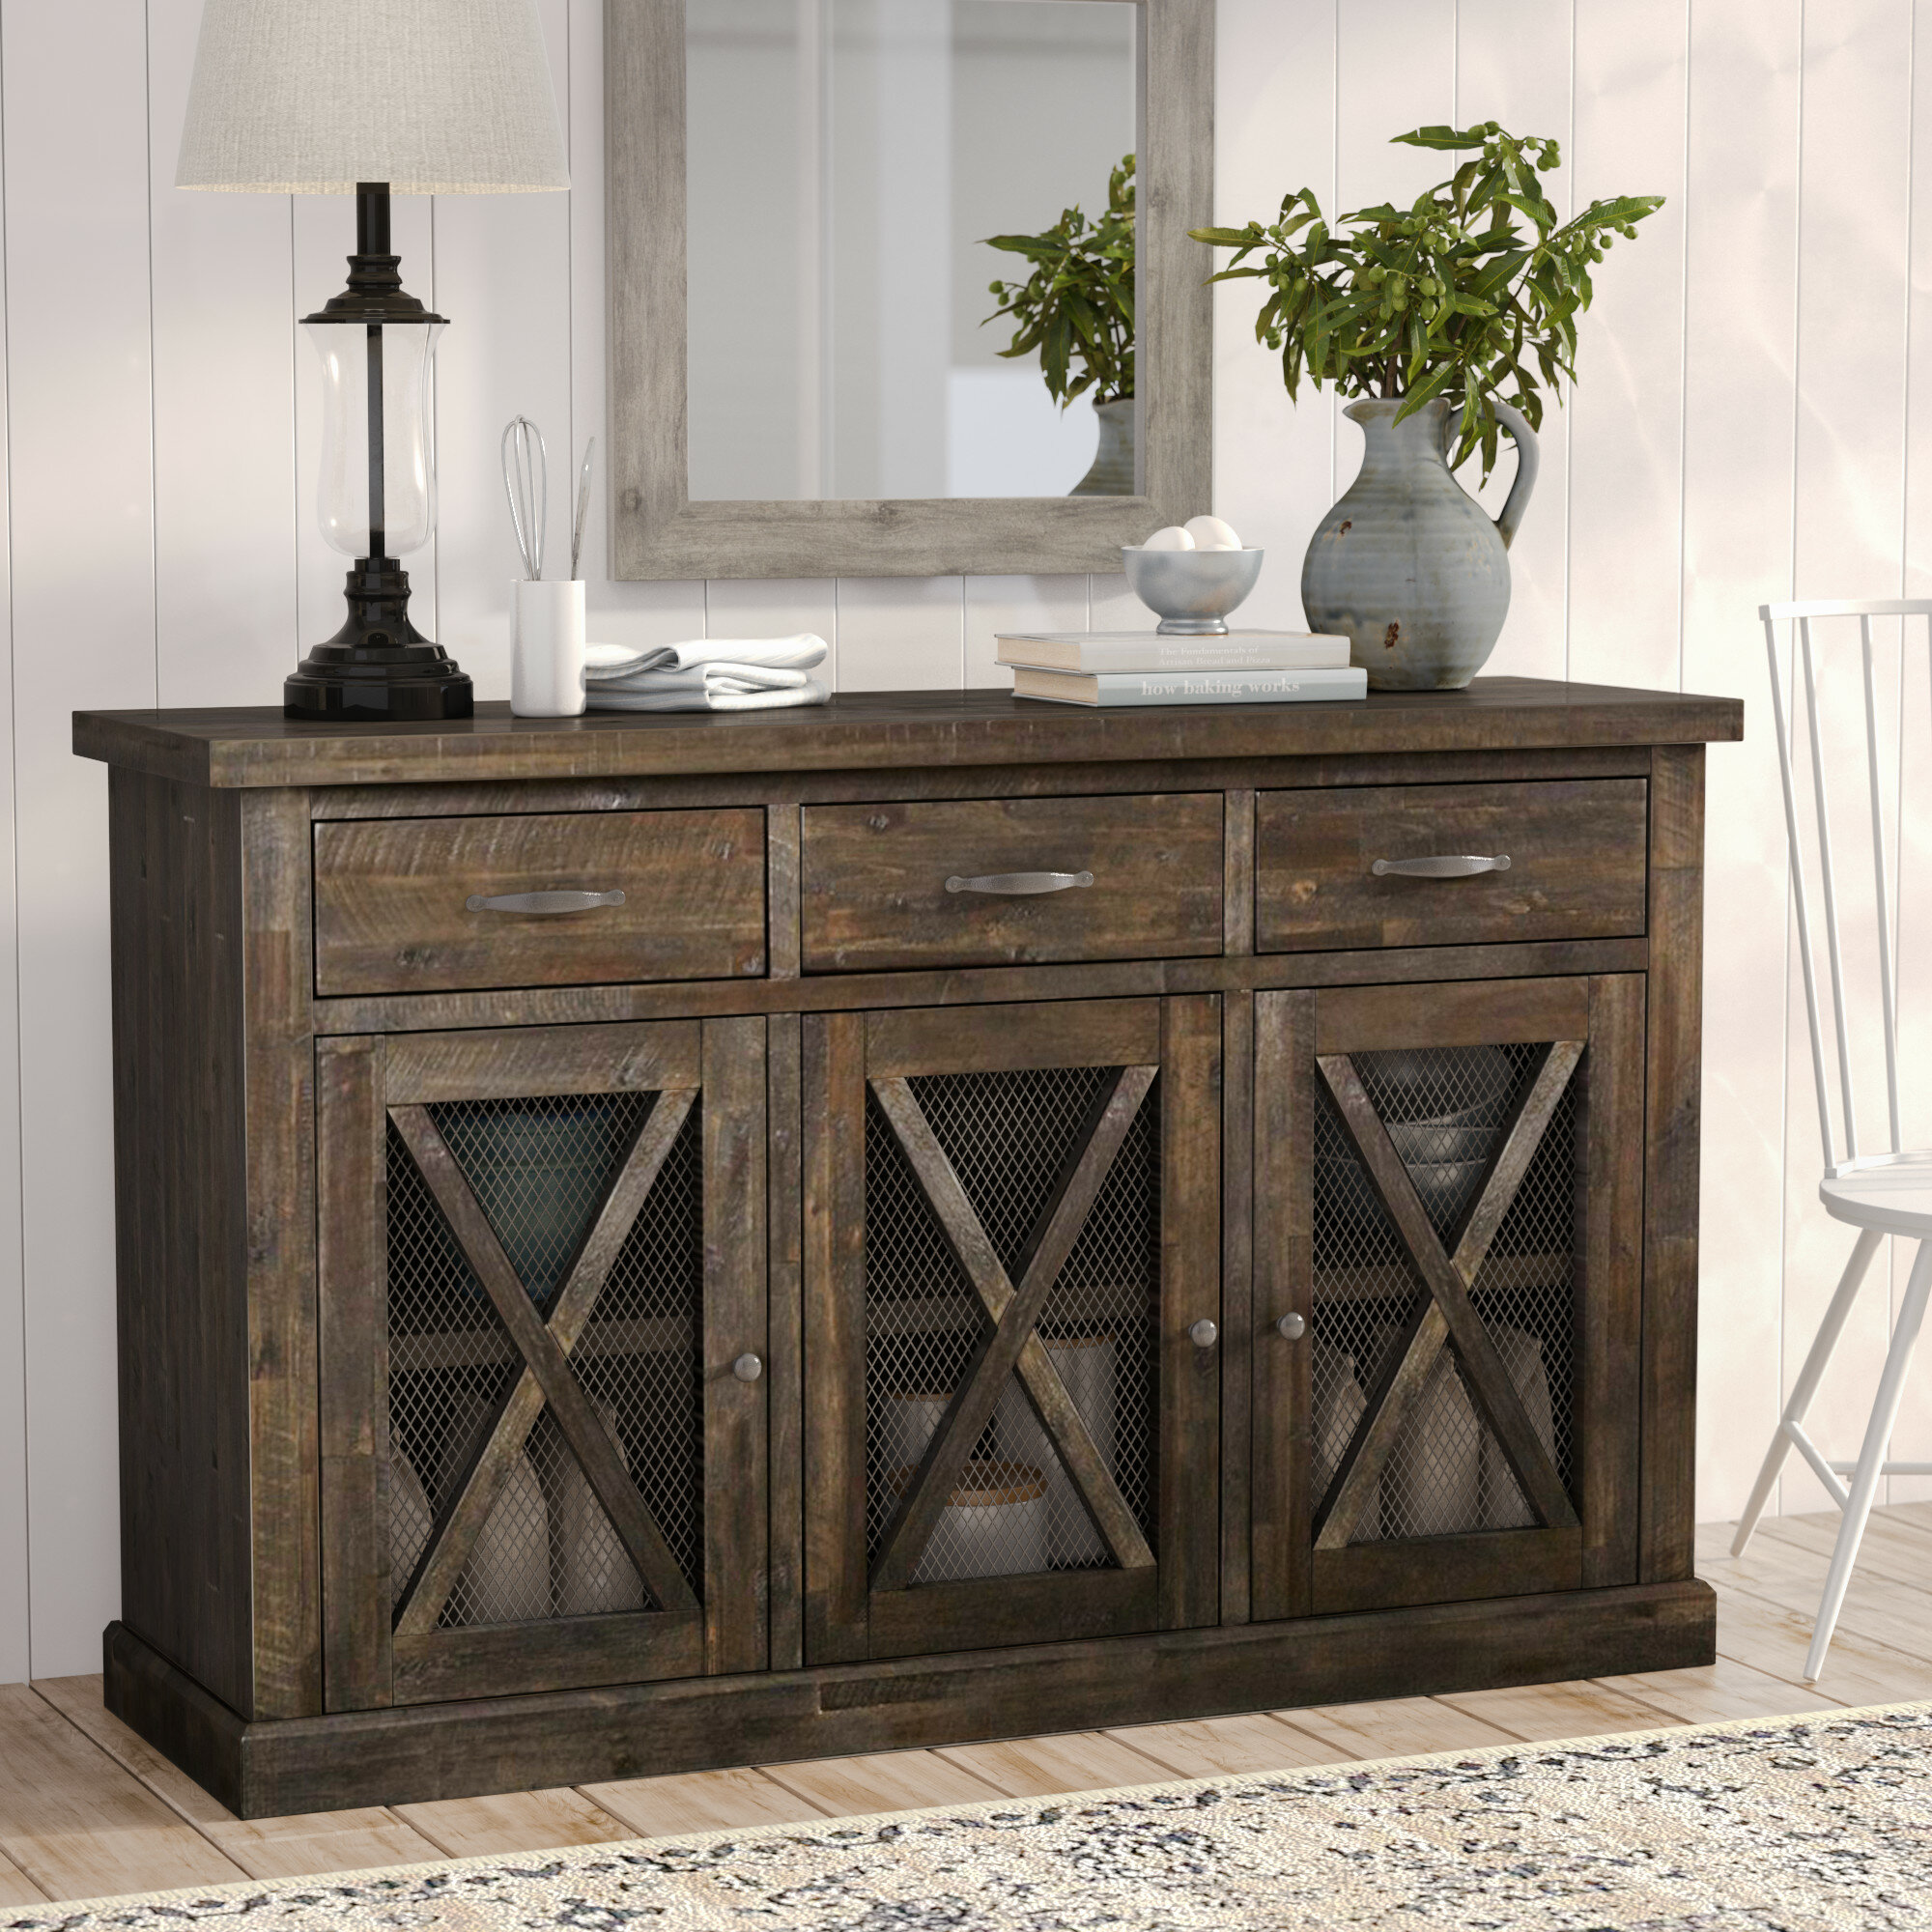 b a t table with panels r number products linen item furniture intrigue sideboard door inc